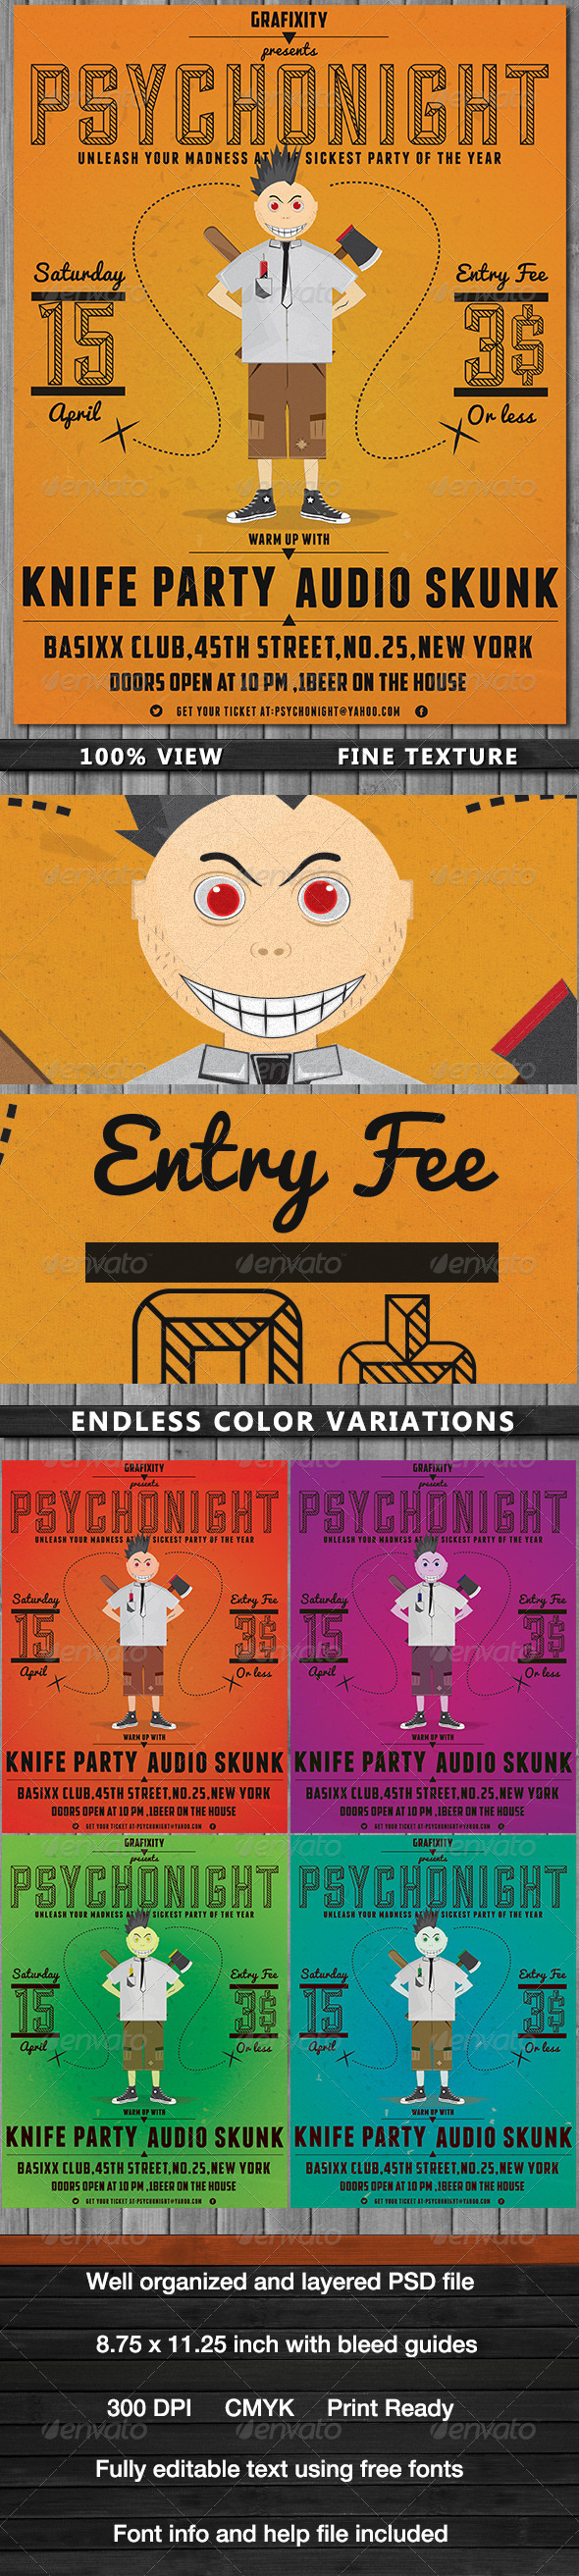 GraphicRiver PsychoNight Vintage Retro Poster 4515944